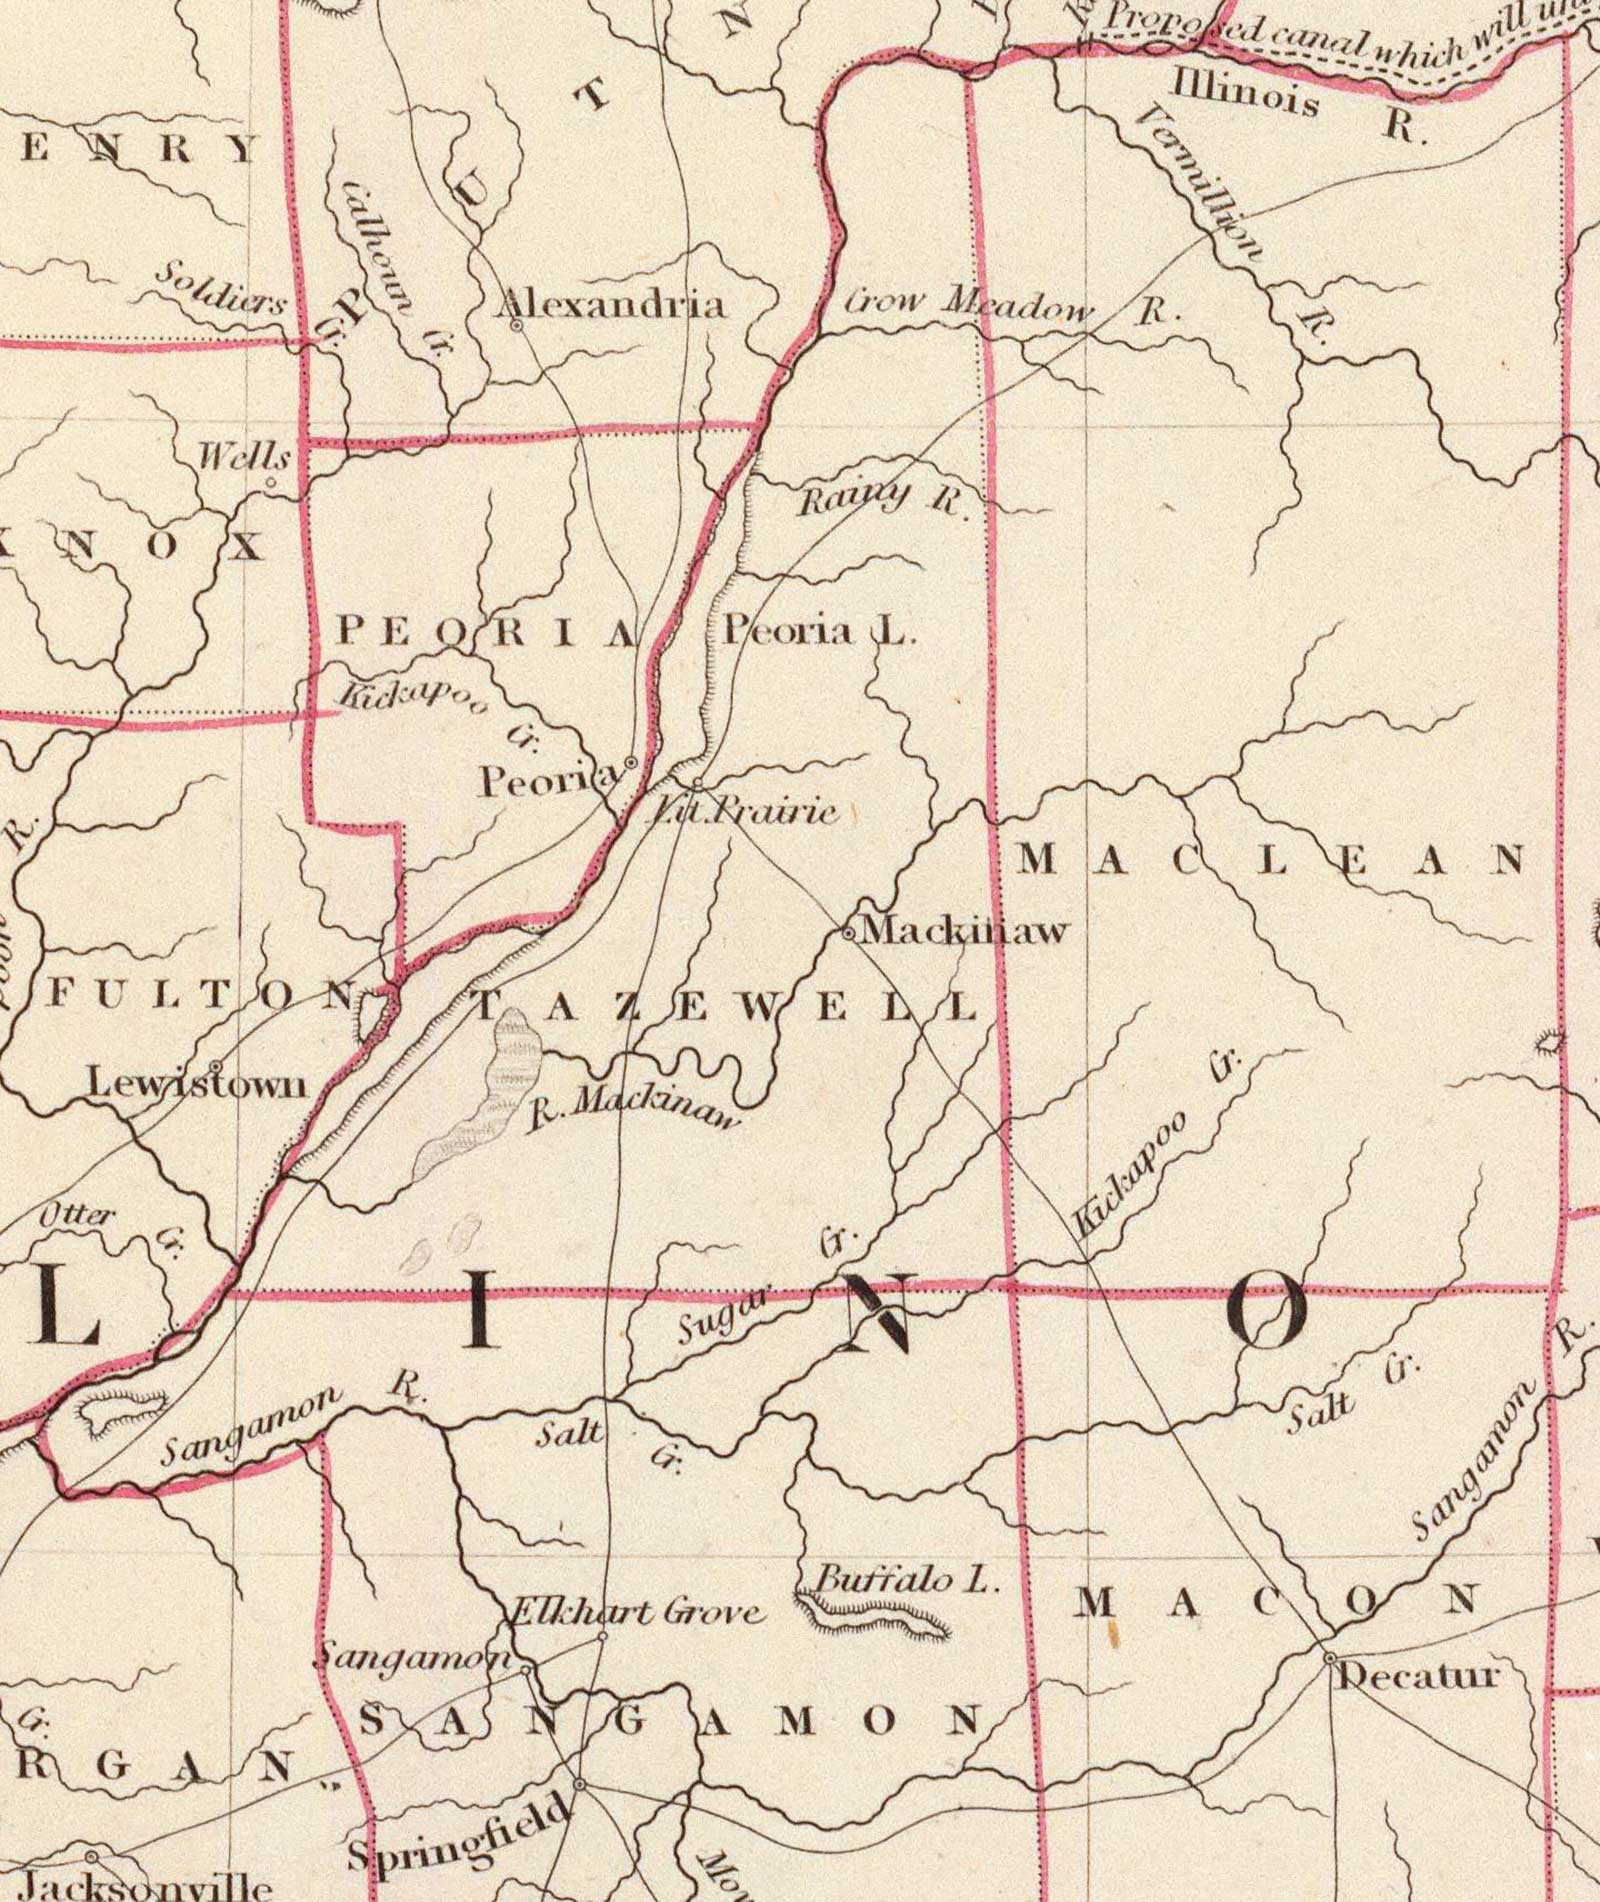 1833 Tazewell County Map